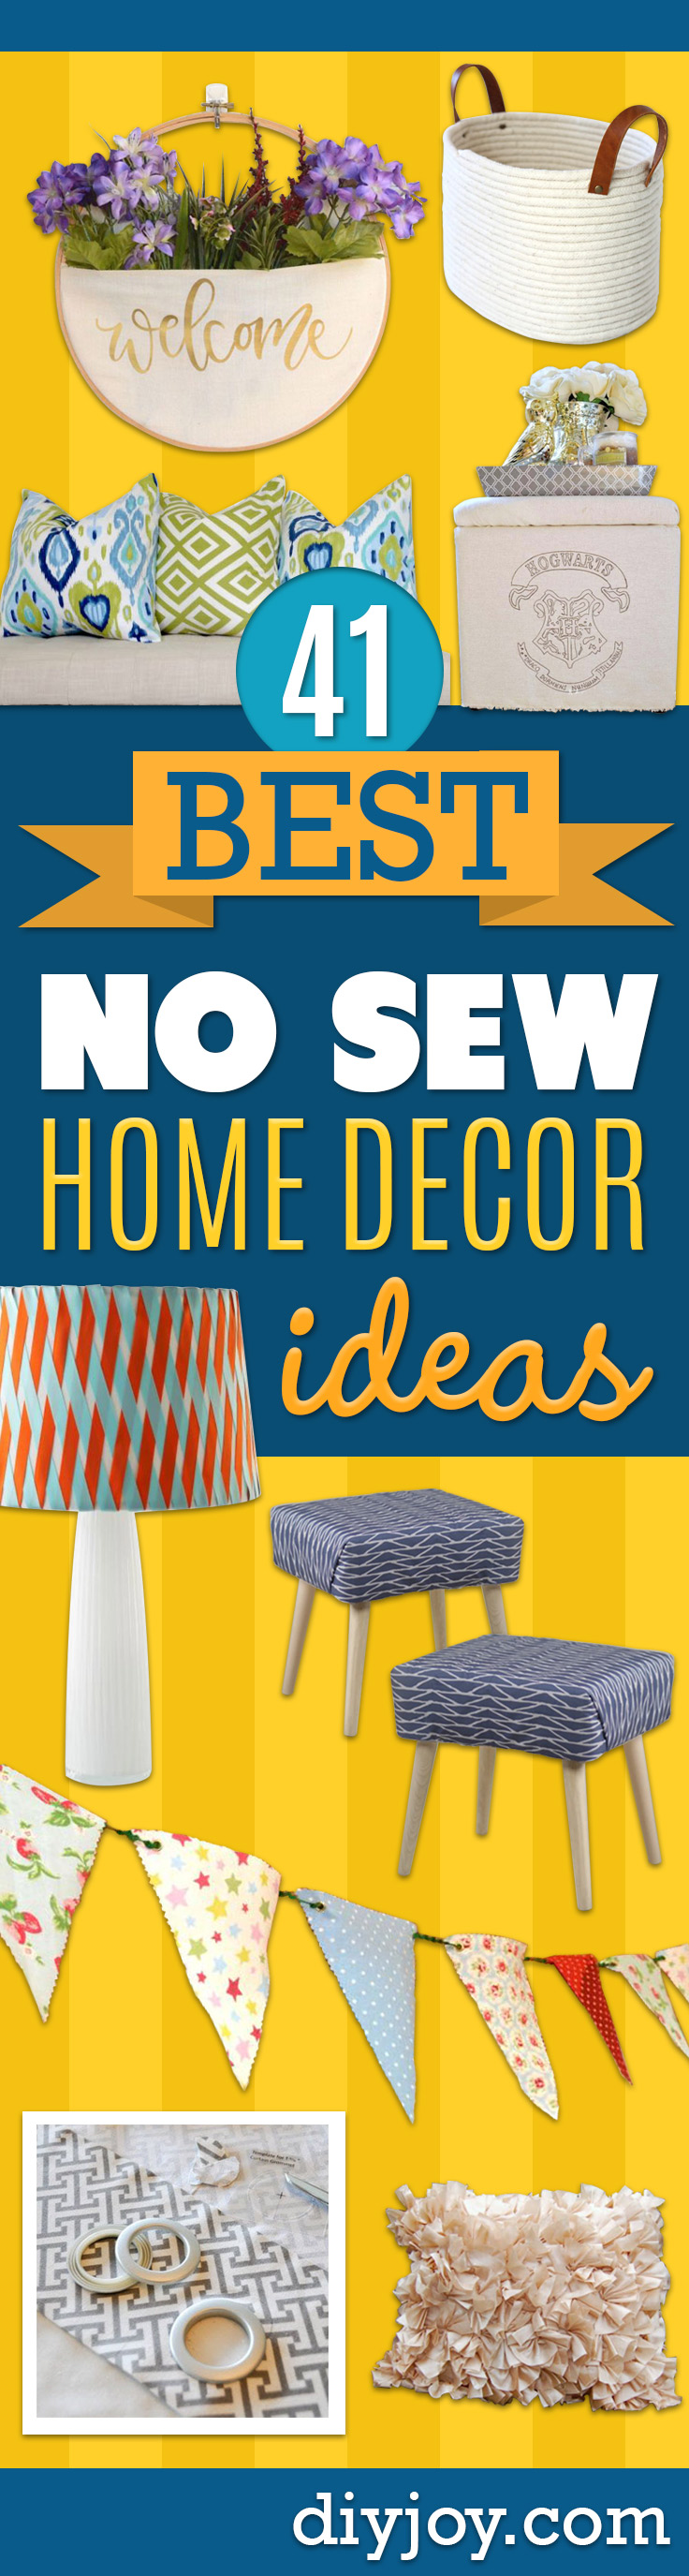 No Sew DIY Home Decor Ideas - Easy No Sew Projects to Make for Bedroom,. Kitchen, Bath - Crafts to Make and Sell, Blankets, No Sewing Project Ideas